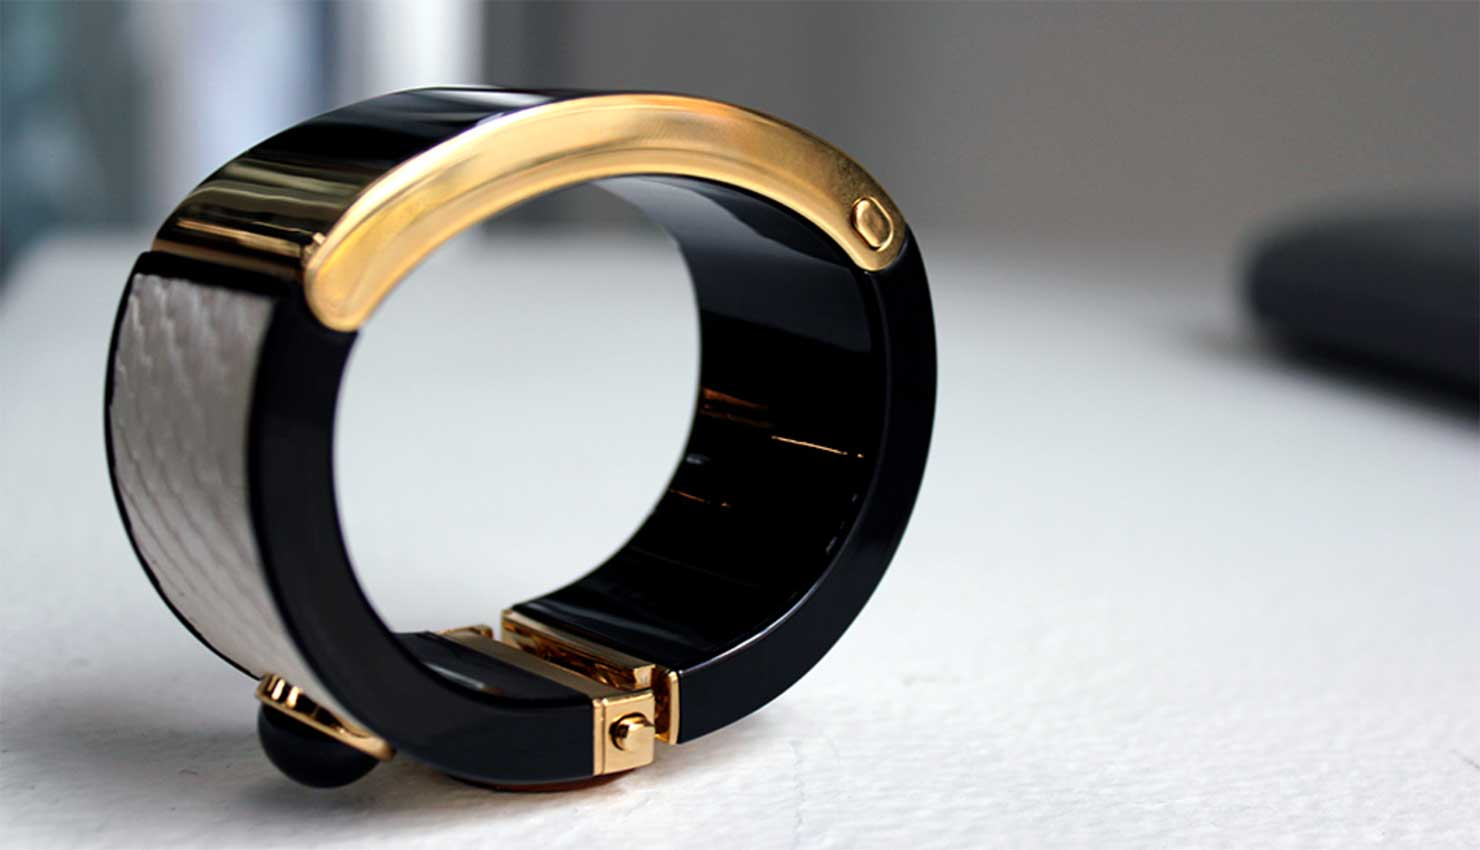 New Mica Smart Bracelet to Appeal to Fashion Trendy Women